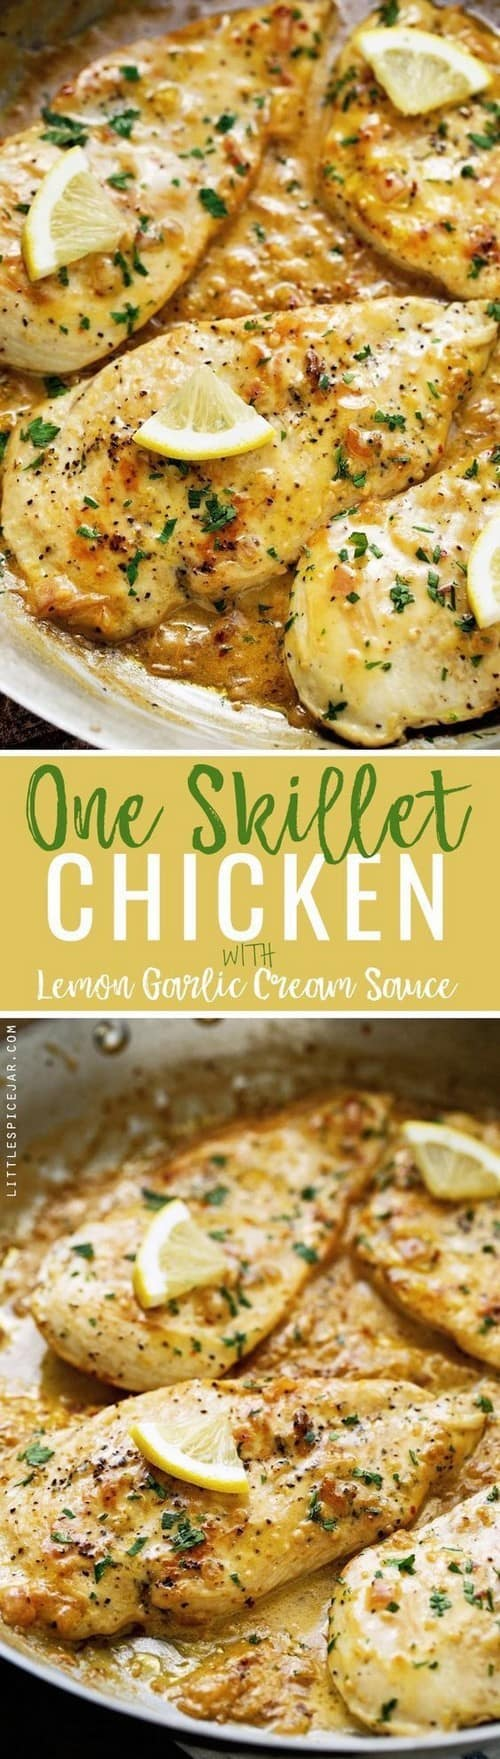 Keto One Skillet Chicken with Lemon Garlic Cream Sauce